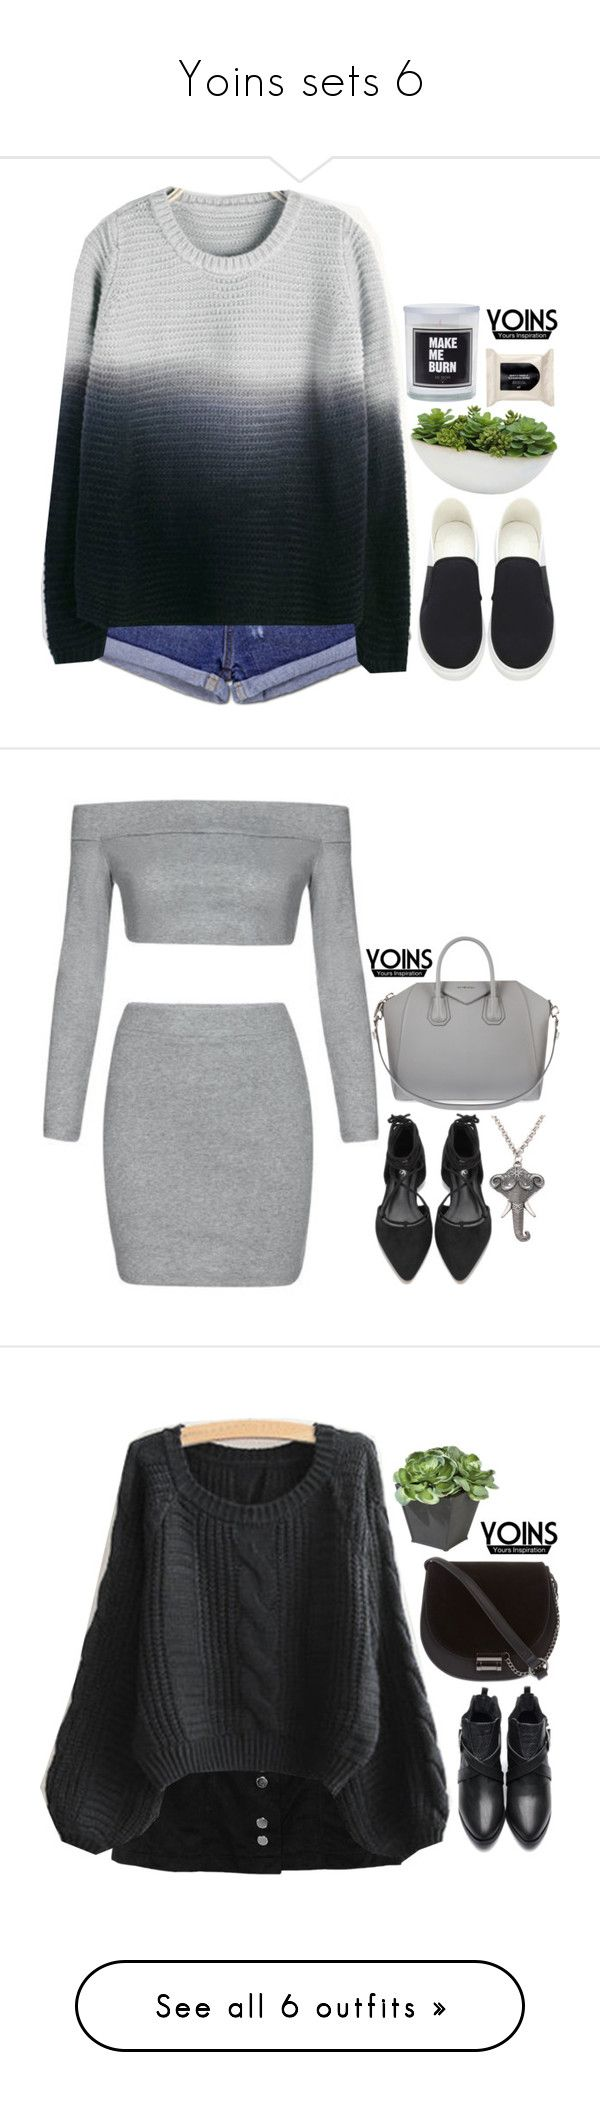 """""""Yoins sets 6"""" by emilypondng ❤ liked on Polyvore featuring Distinctive Designs, H&M, yoins, yoinscollection, loveyoins, Givenchy, Skinnydip, Ethan Allen, Miss Selfridge and Valextra"""